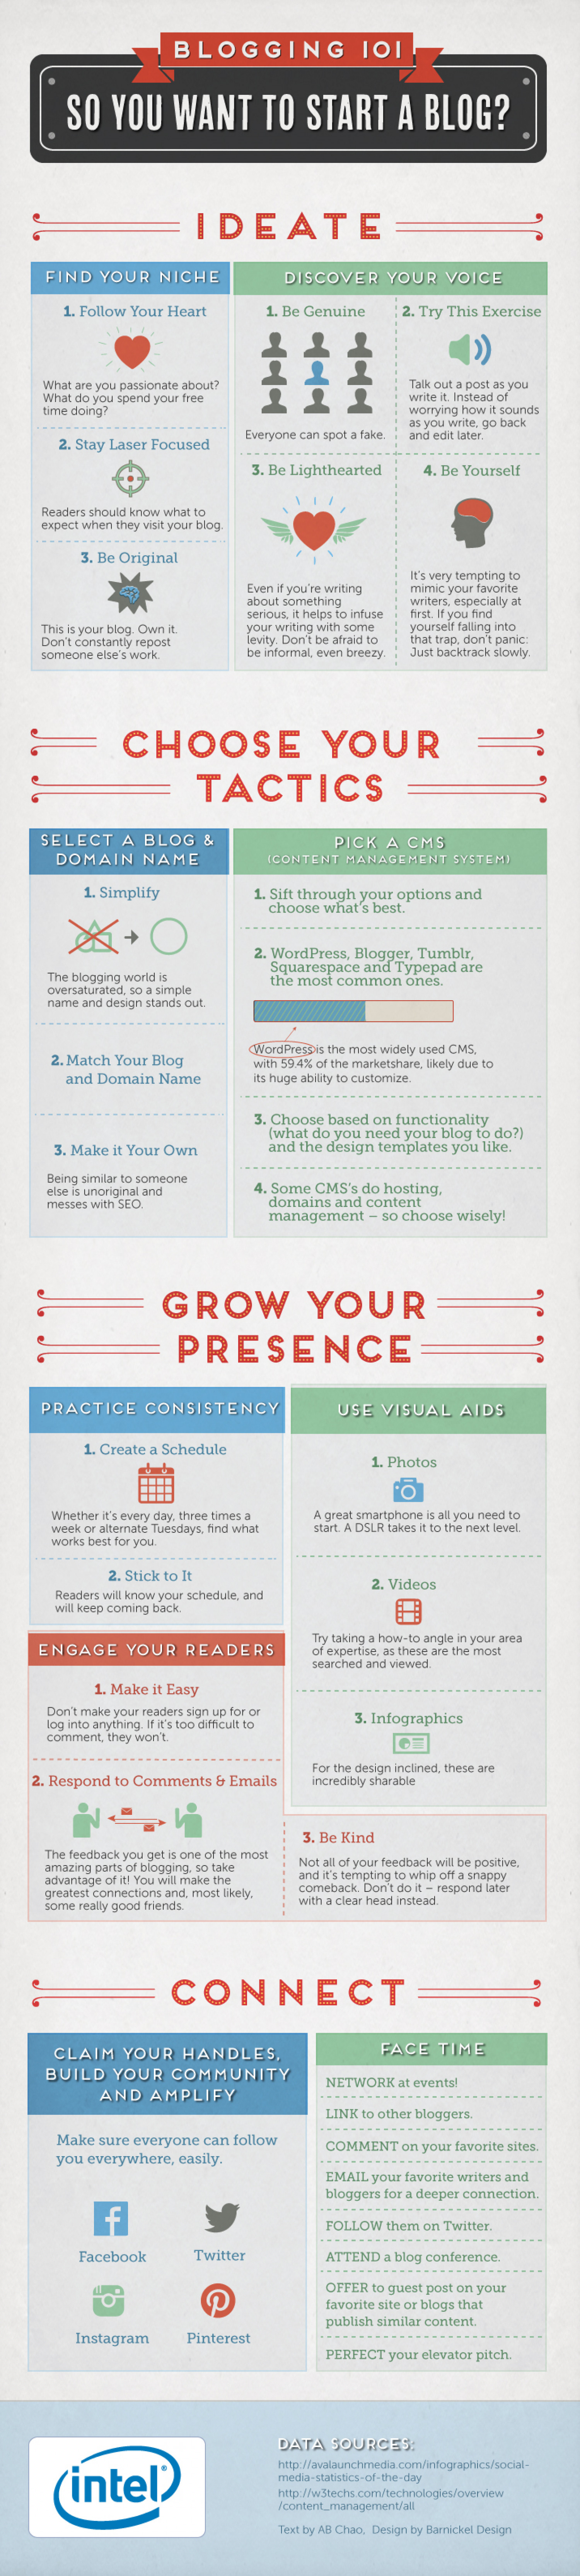 Blogging 101: So You Want to Start a Blog? Infographic